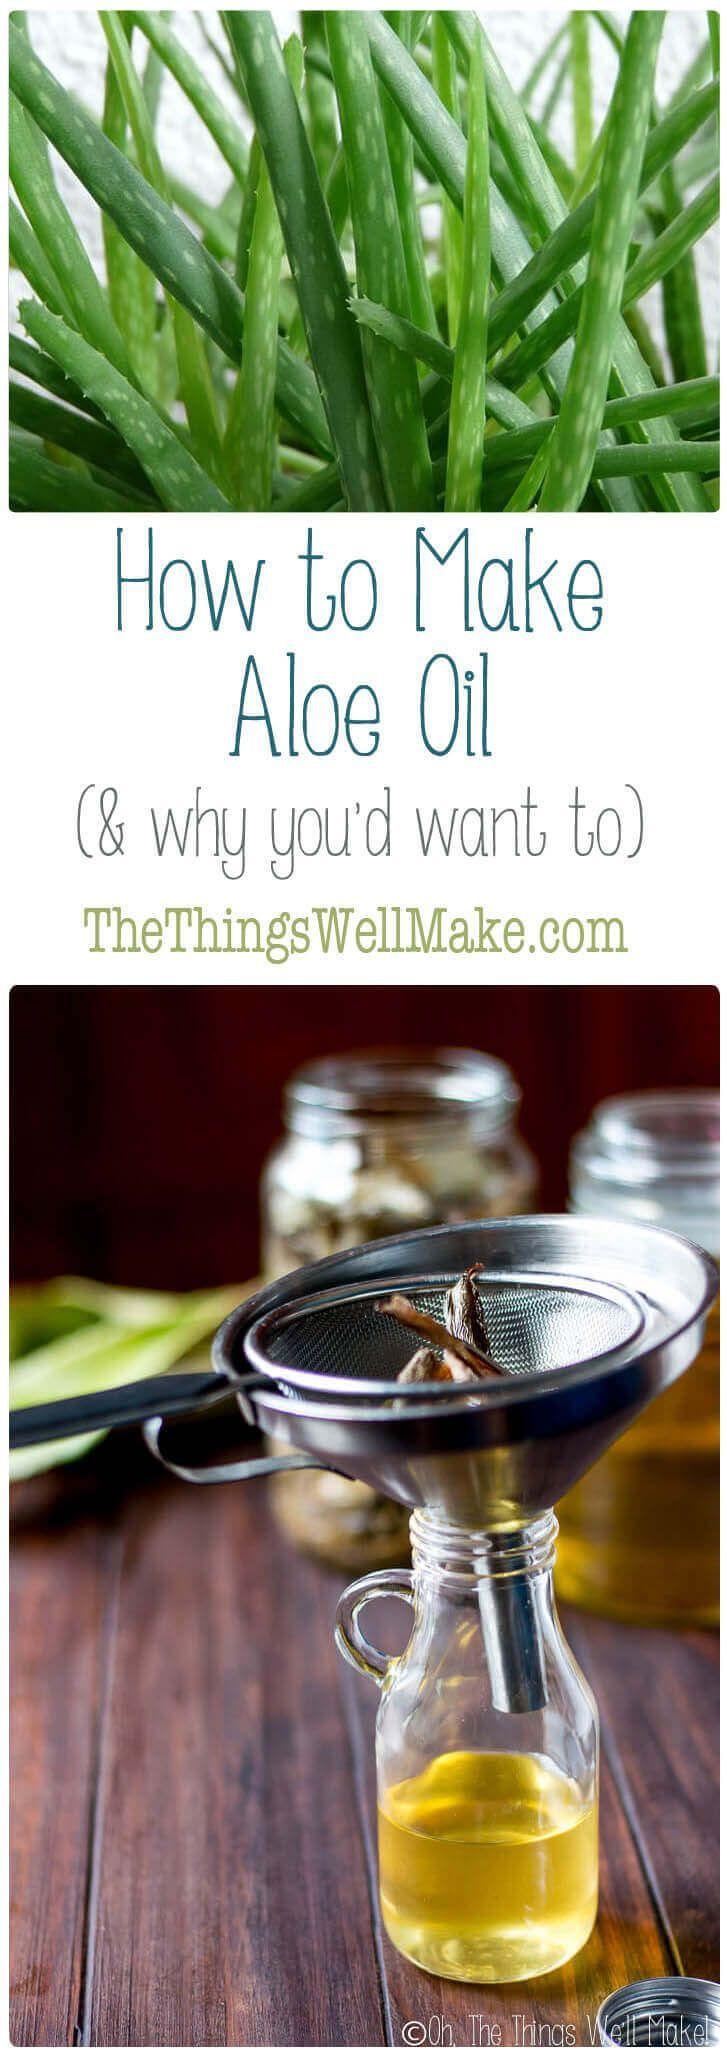 Aloe oil has numerous benefits for skin and hair, and can be used in a number of ways. Learn how to make aloe oil, why you would want to, and how to use it. #aloevera #aloeoil #aloe